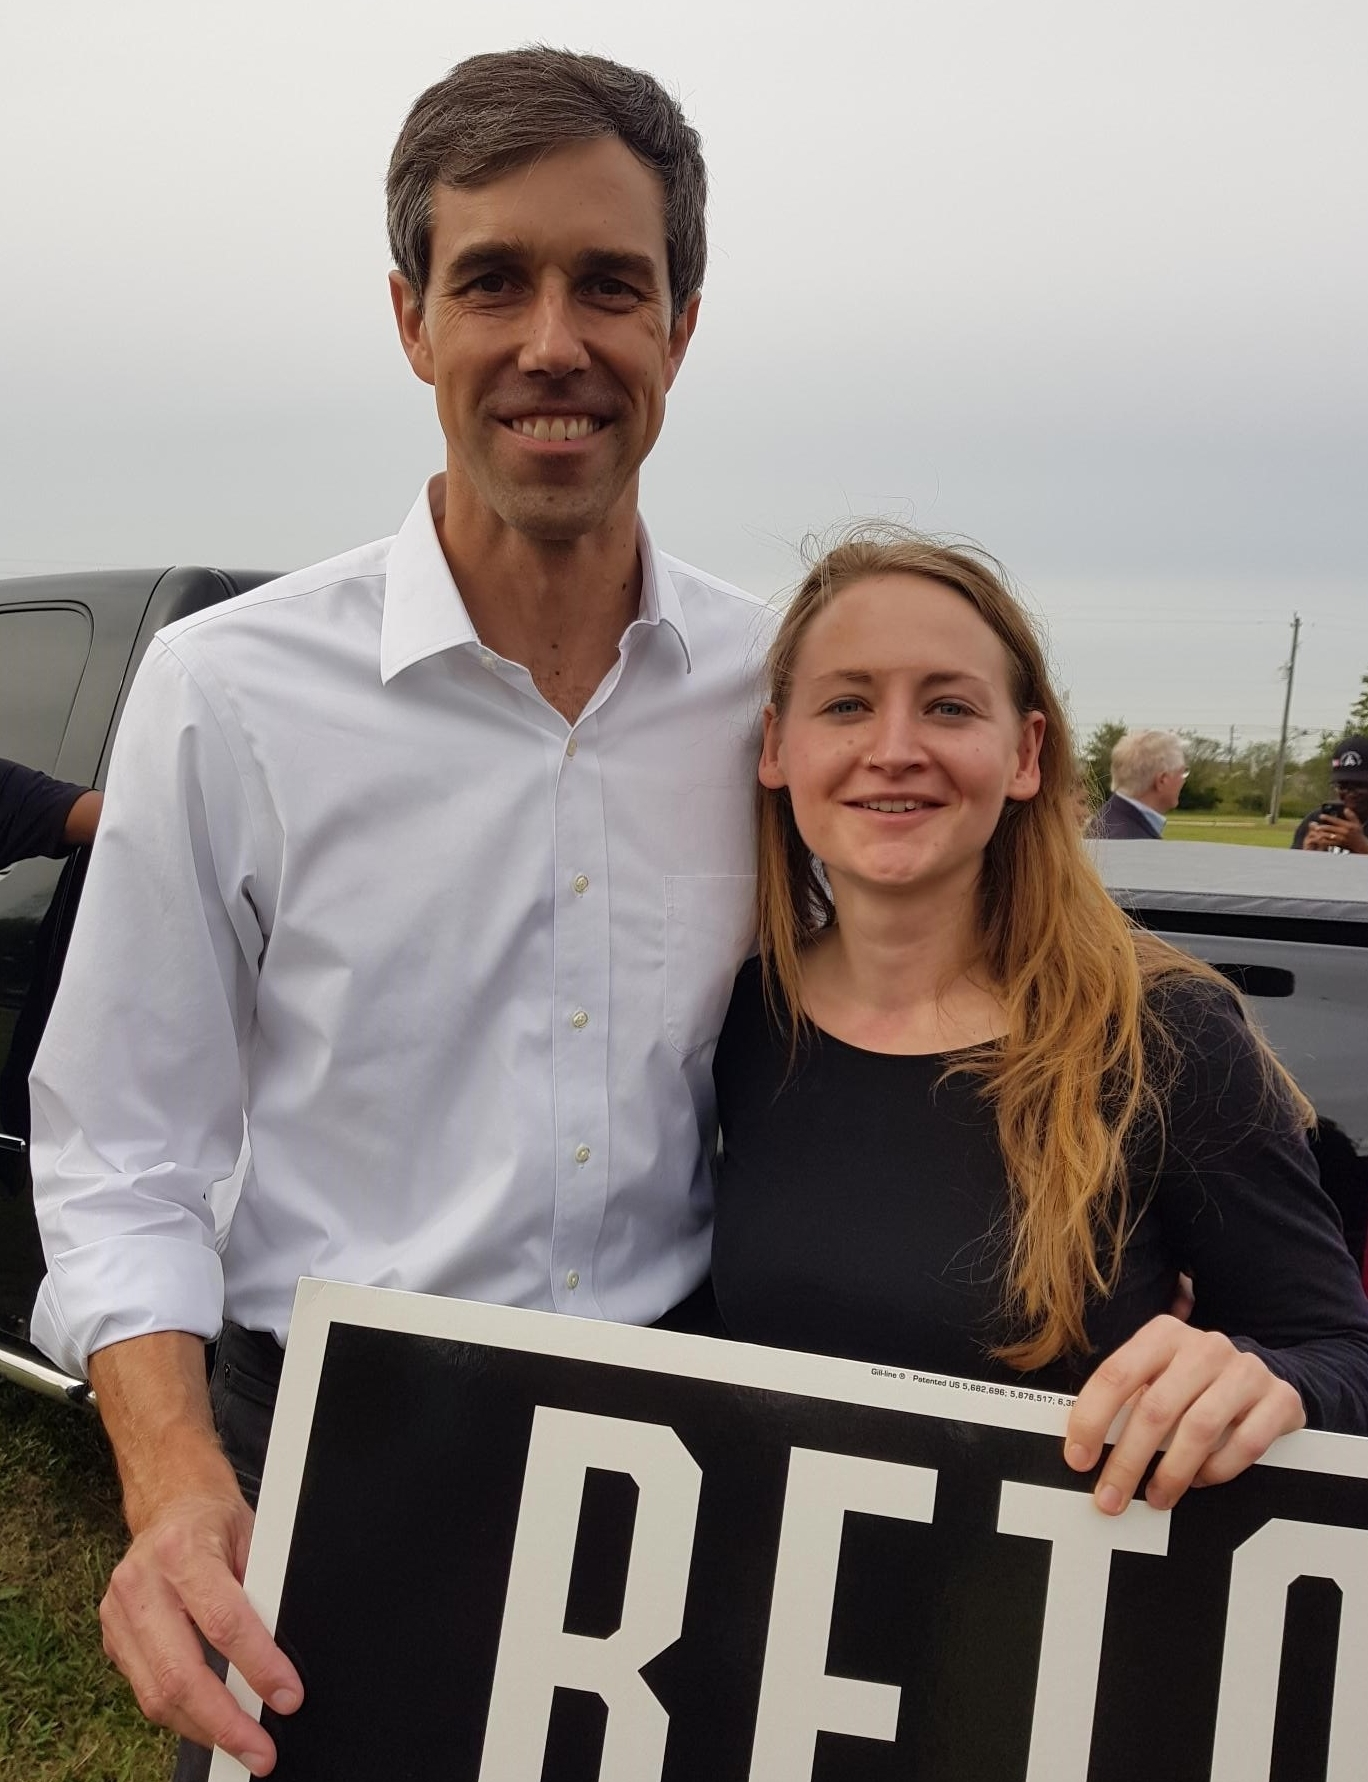 Beto O'Rourke & Juliana Stockheim